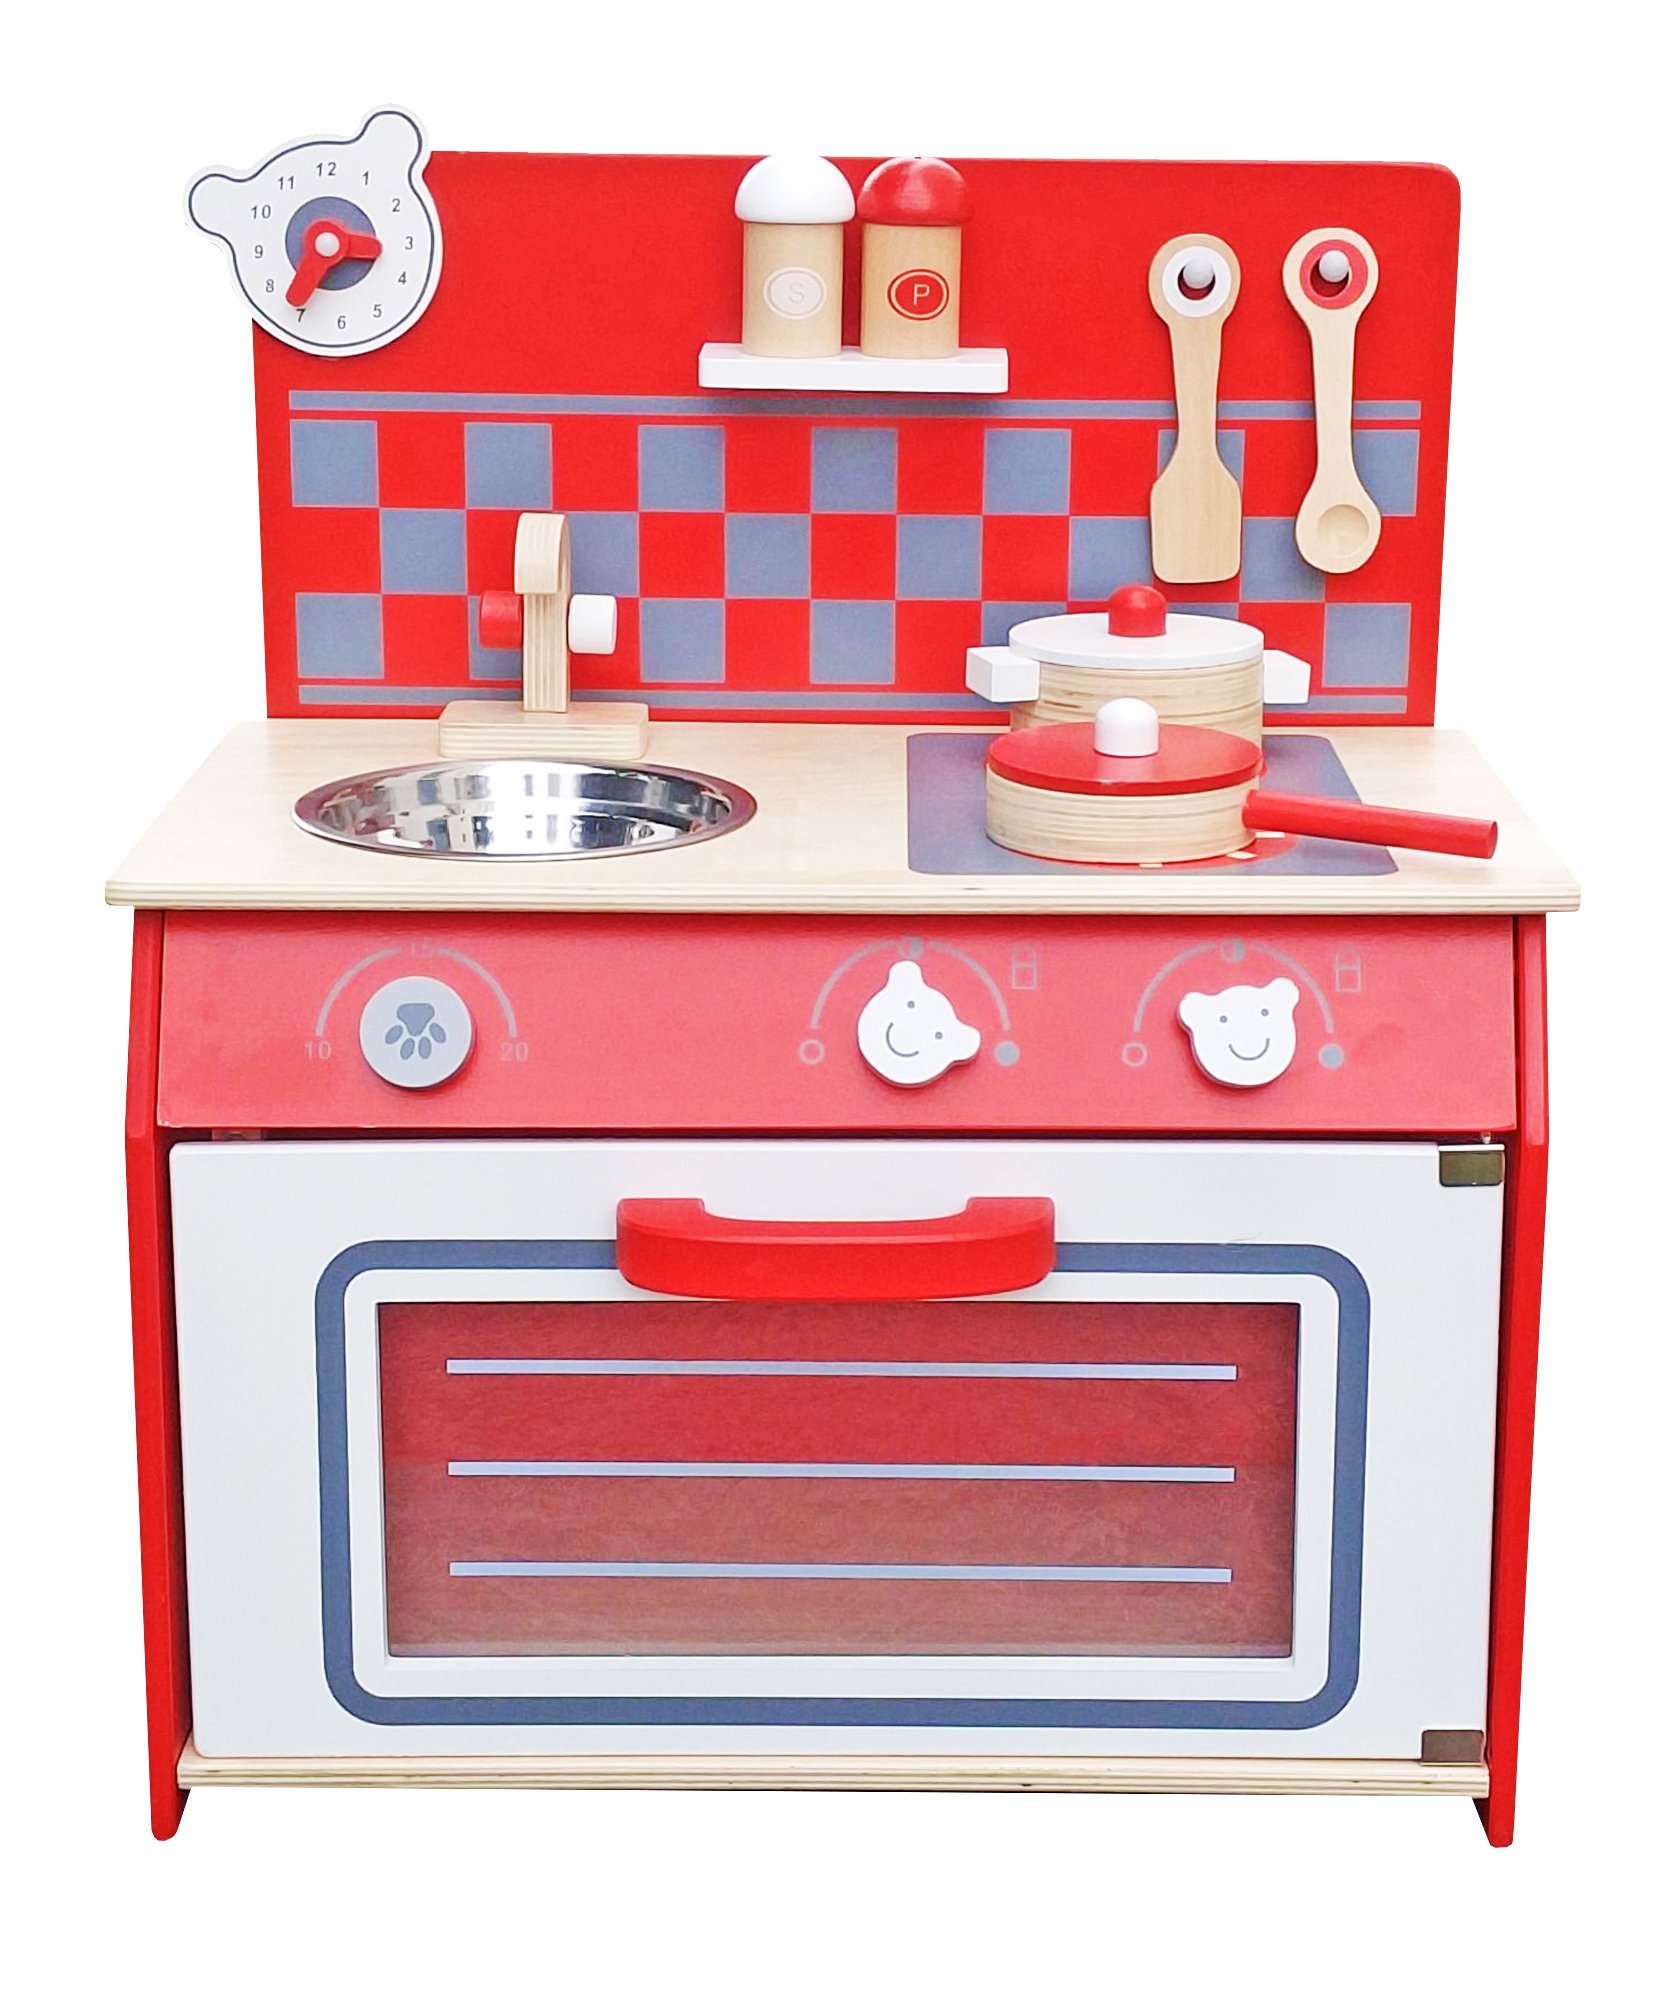 Deluxe kids wooden kitchen toy little chef cooking pretend children role play set with accessories by